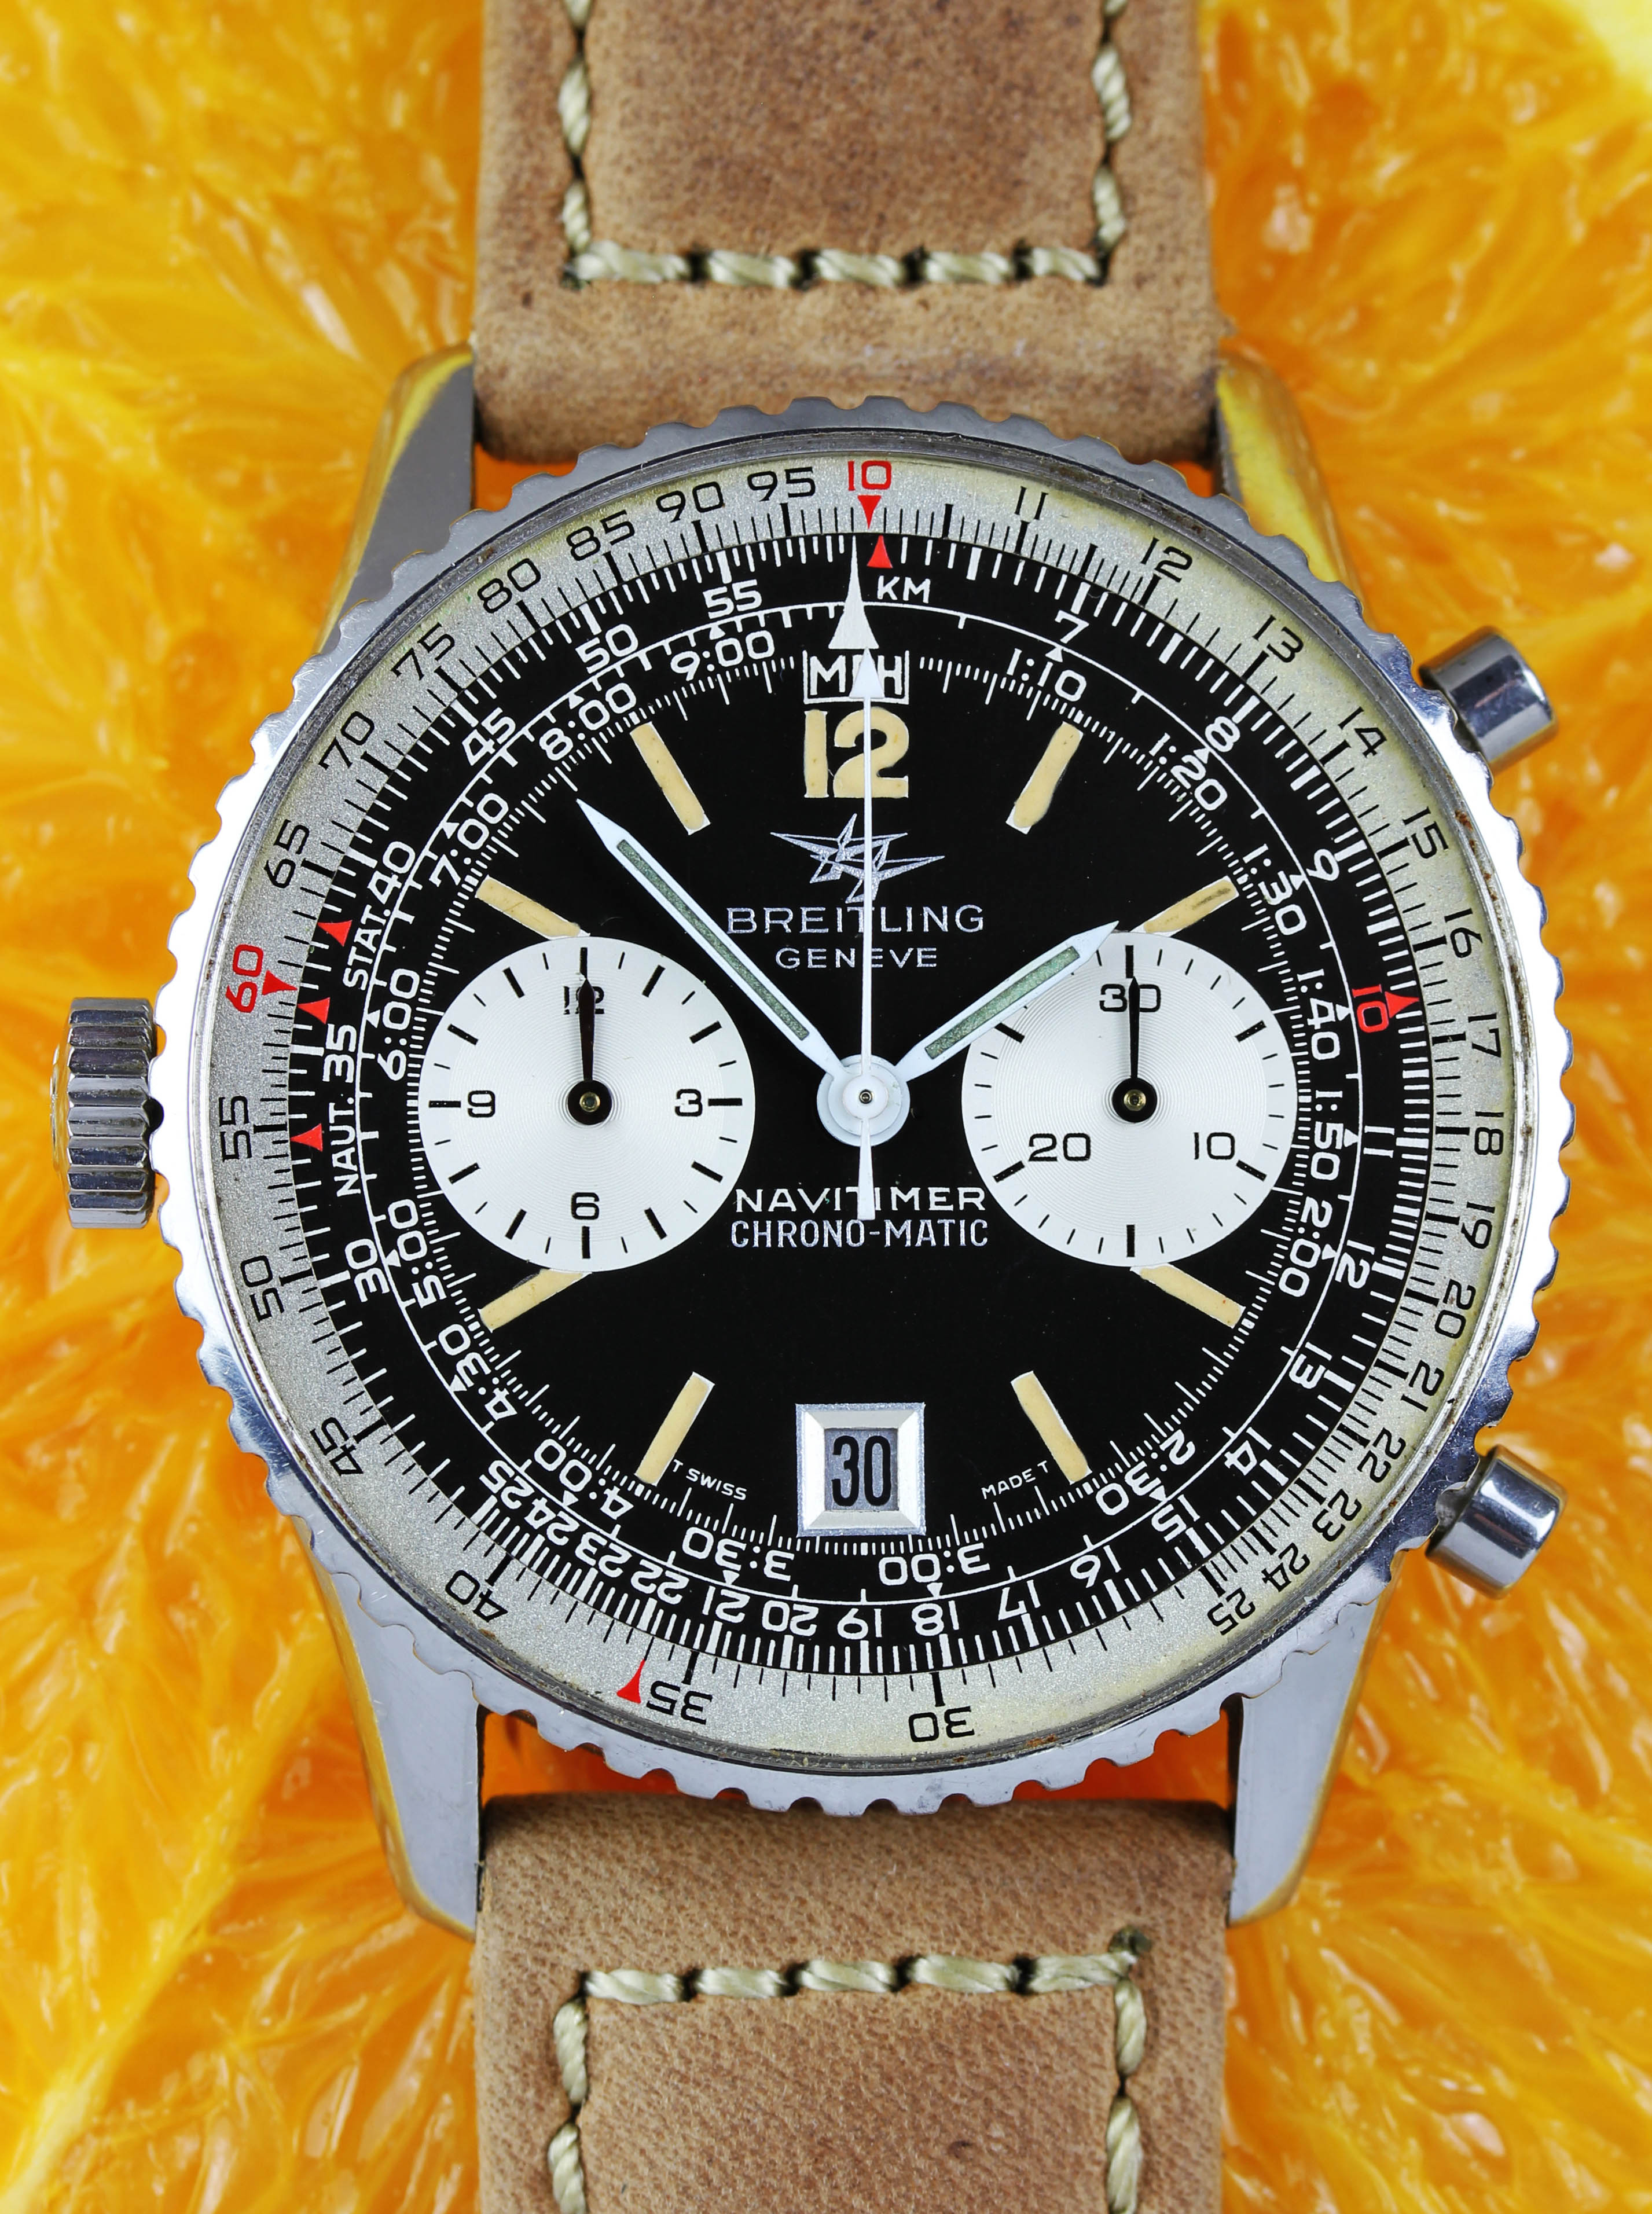 """BREITLING Navitimer """"Chrono-Matic with date from 1973"""", ref. 8806"""